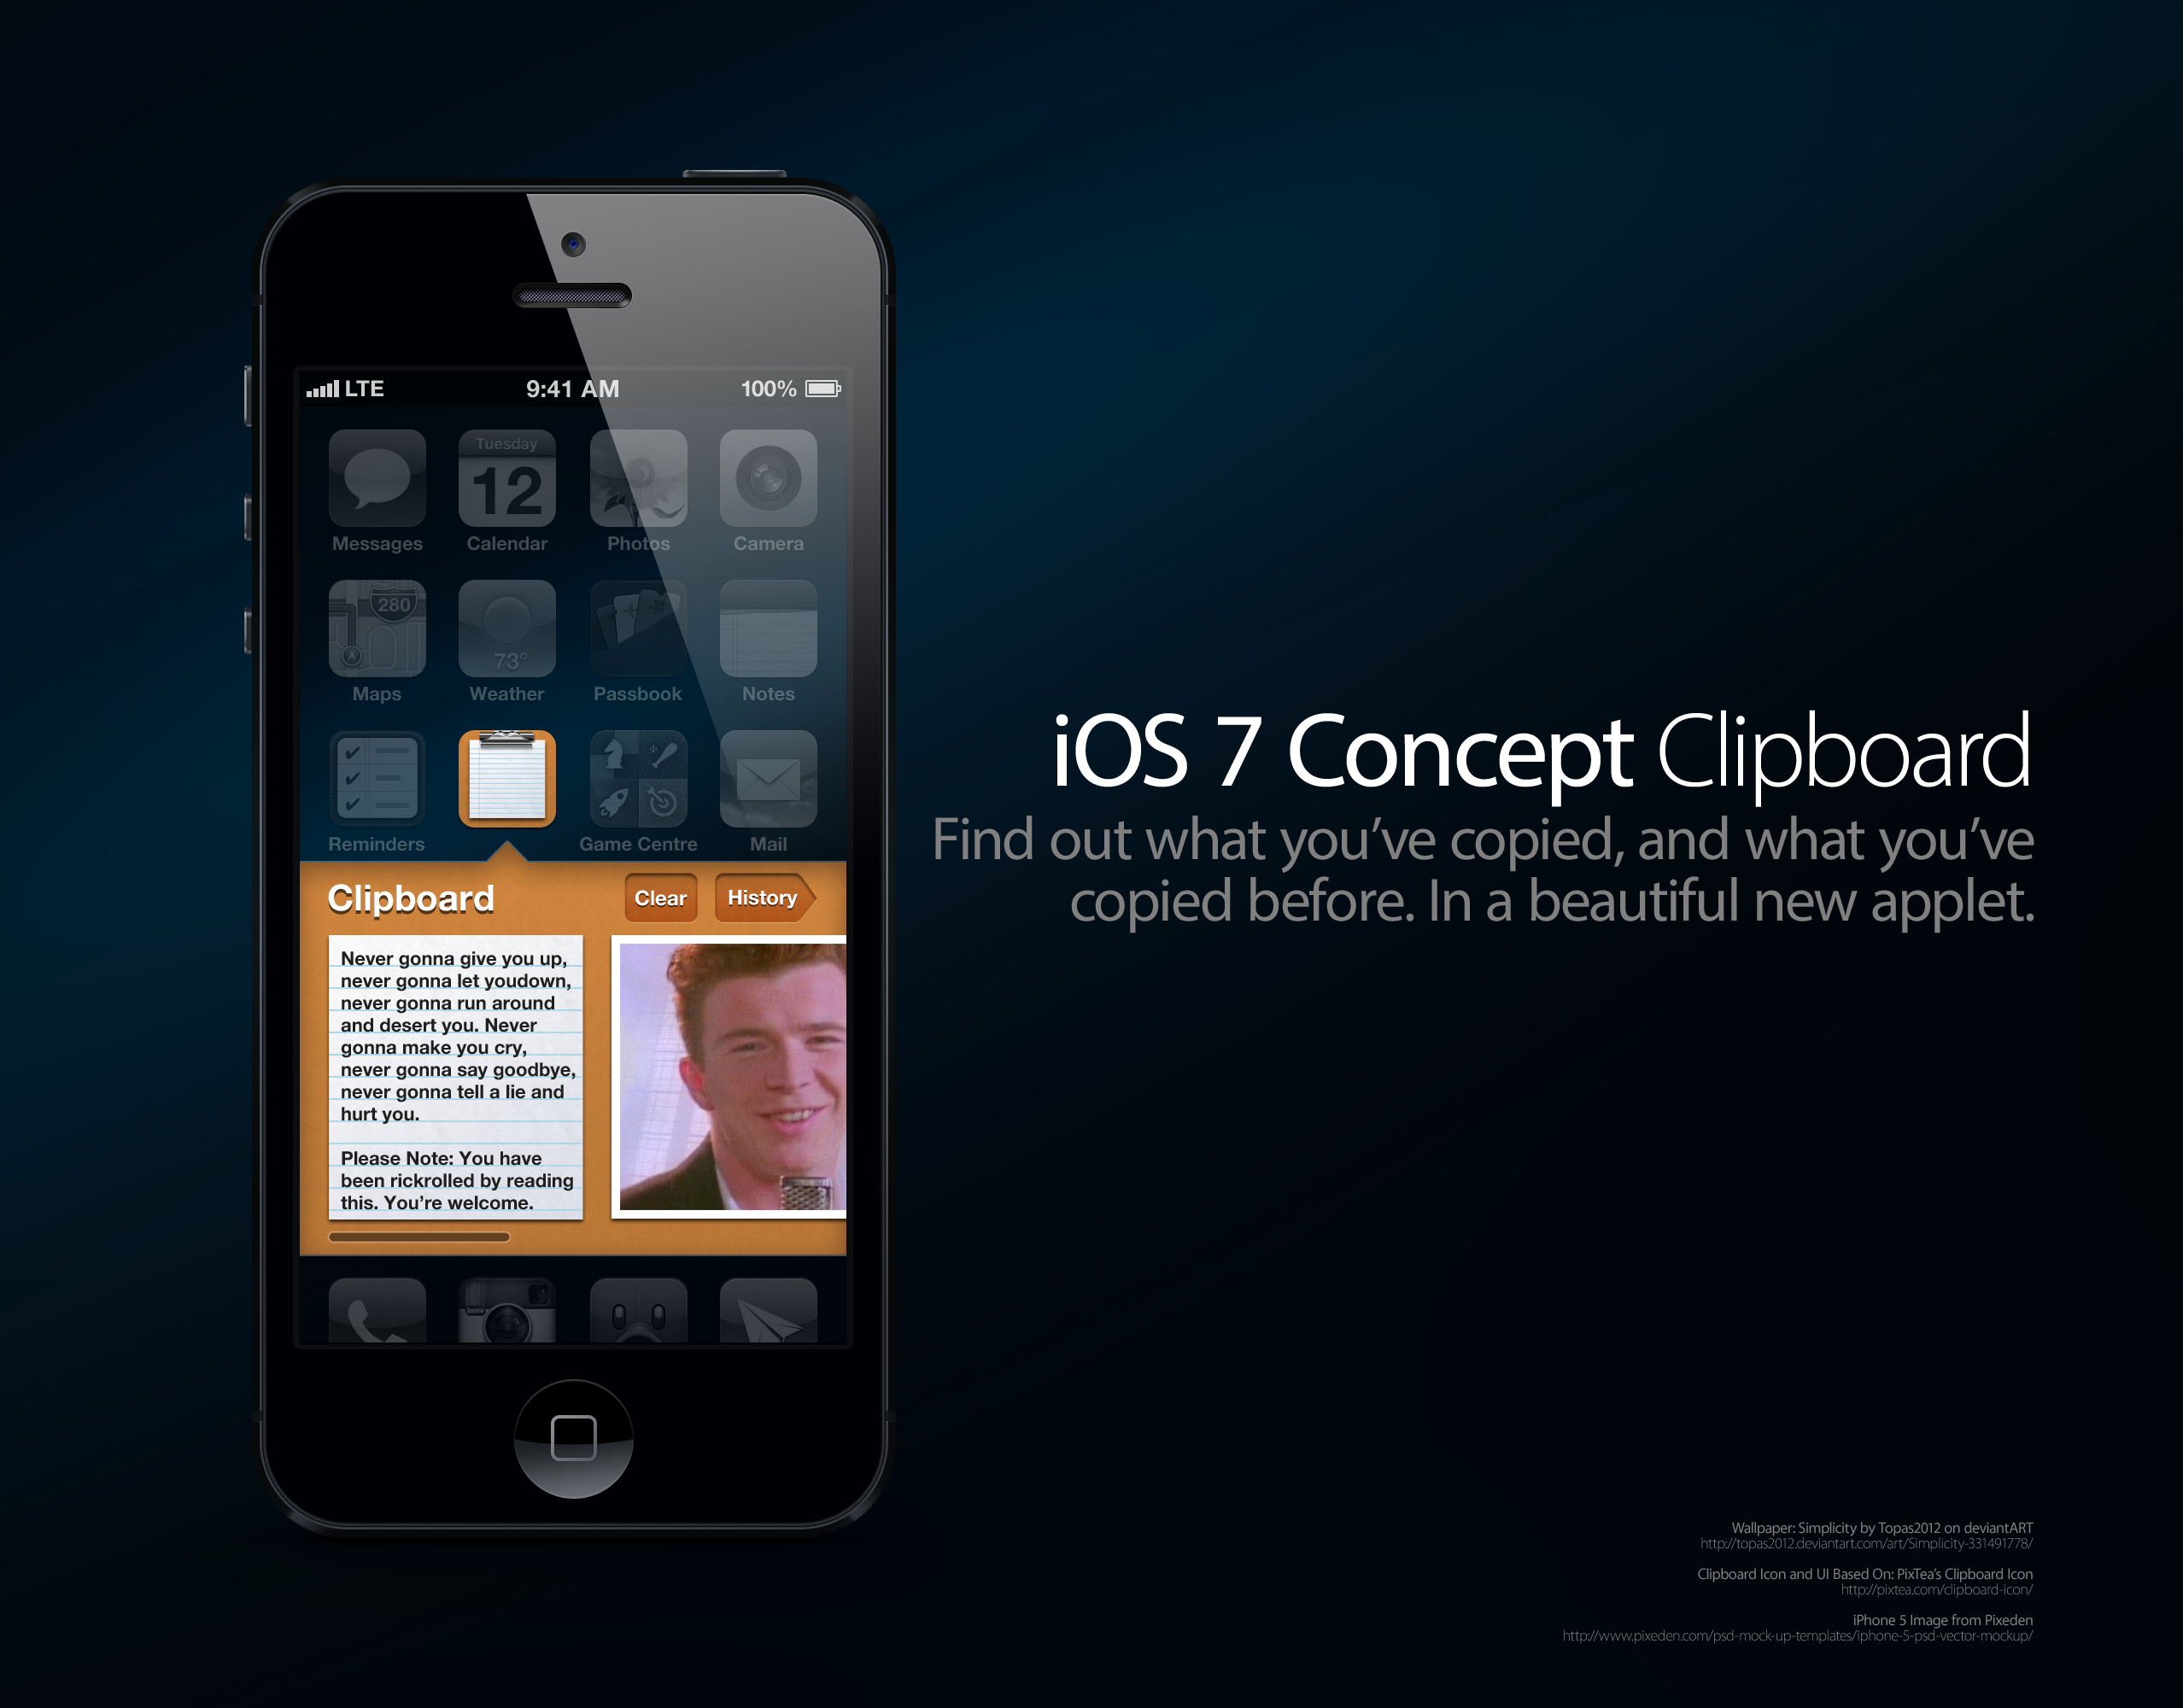 iOS 7 Concept: Clipboard Applet by theIntensePlayer